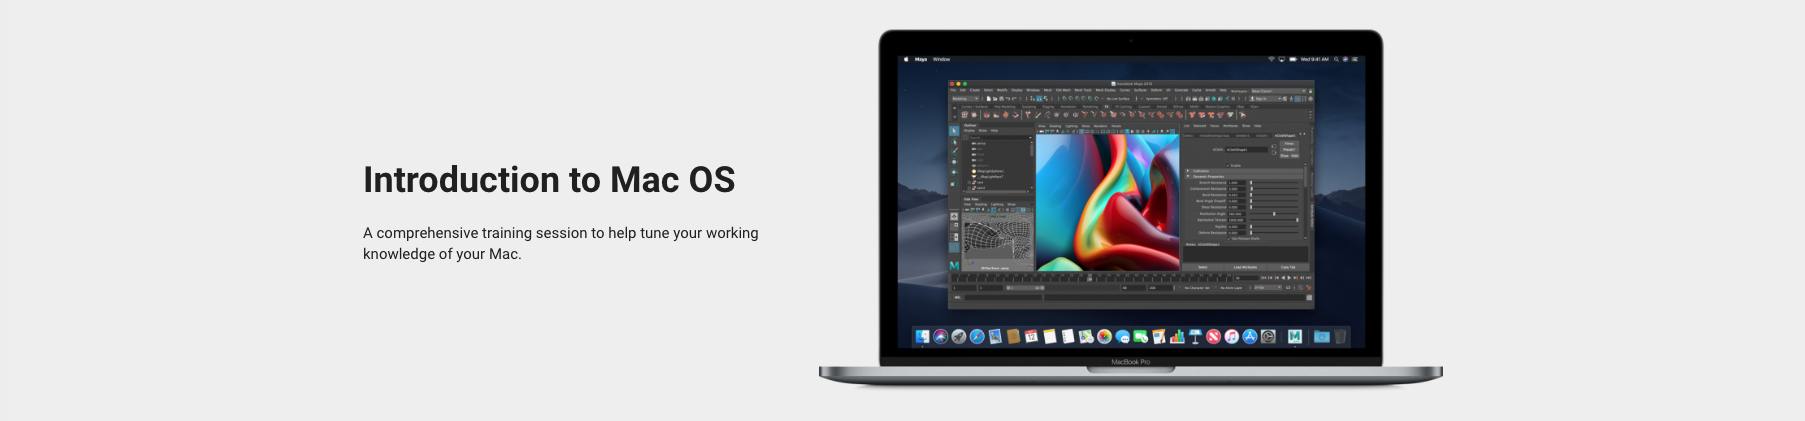 Introduction to macOS